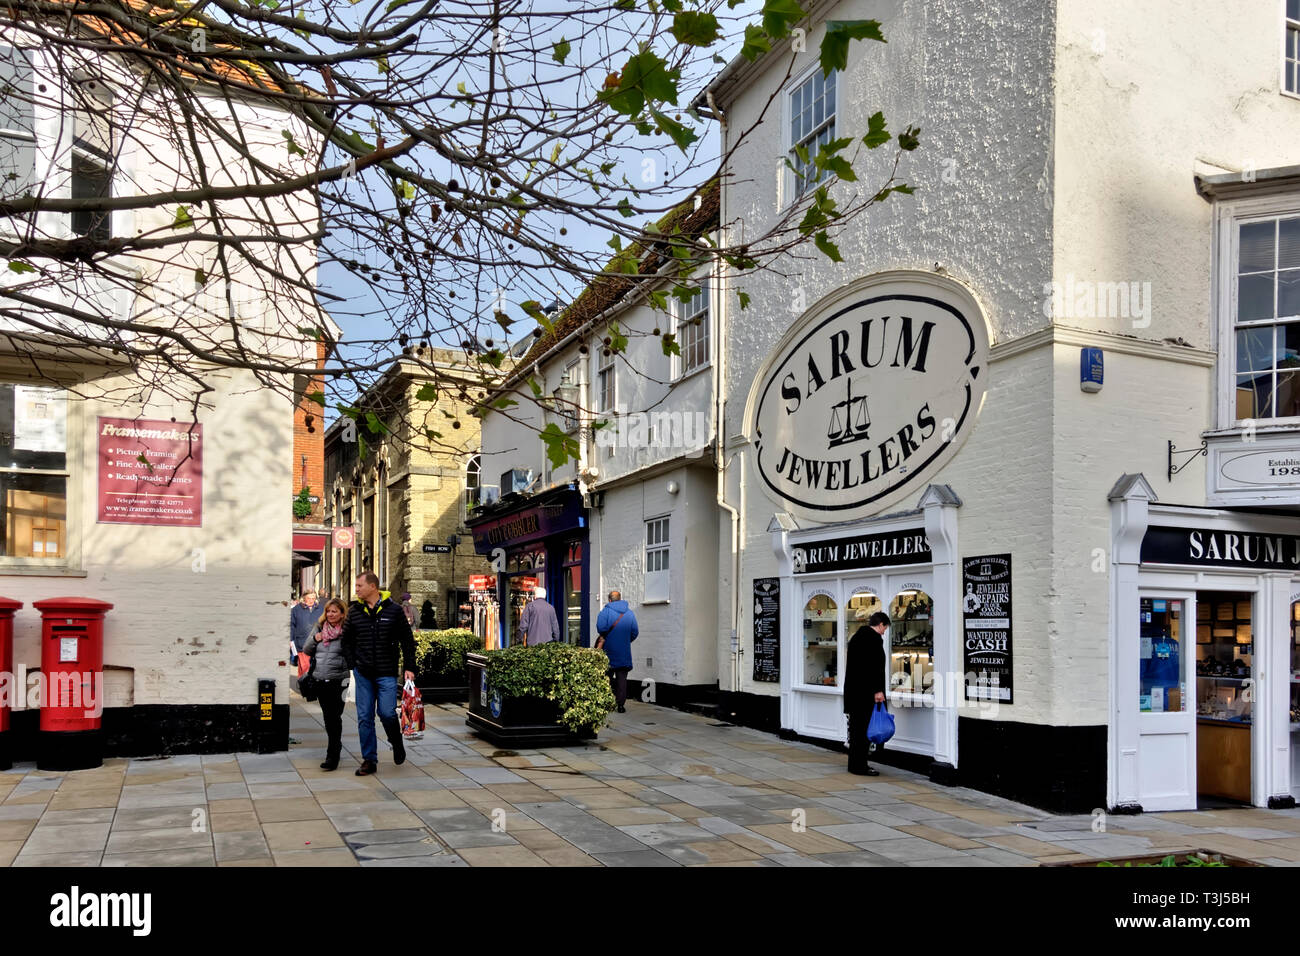 Sarum Jewellers shop in New Canal, Salisbury, Wiltshire, England UK Stock Photo